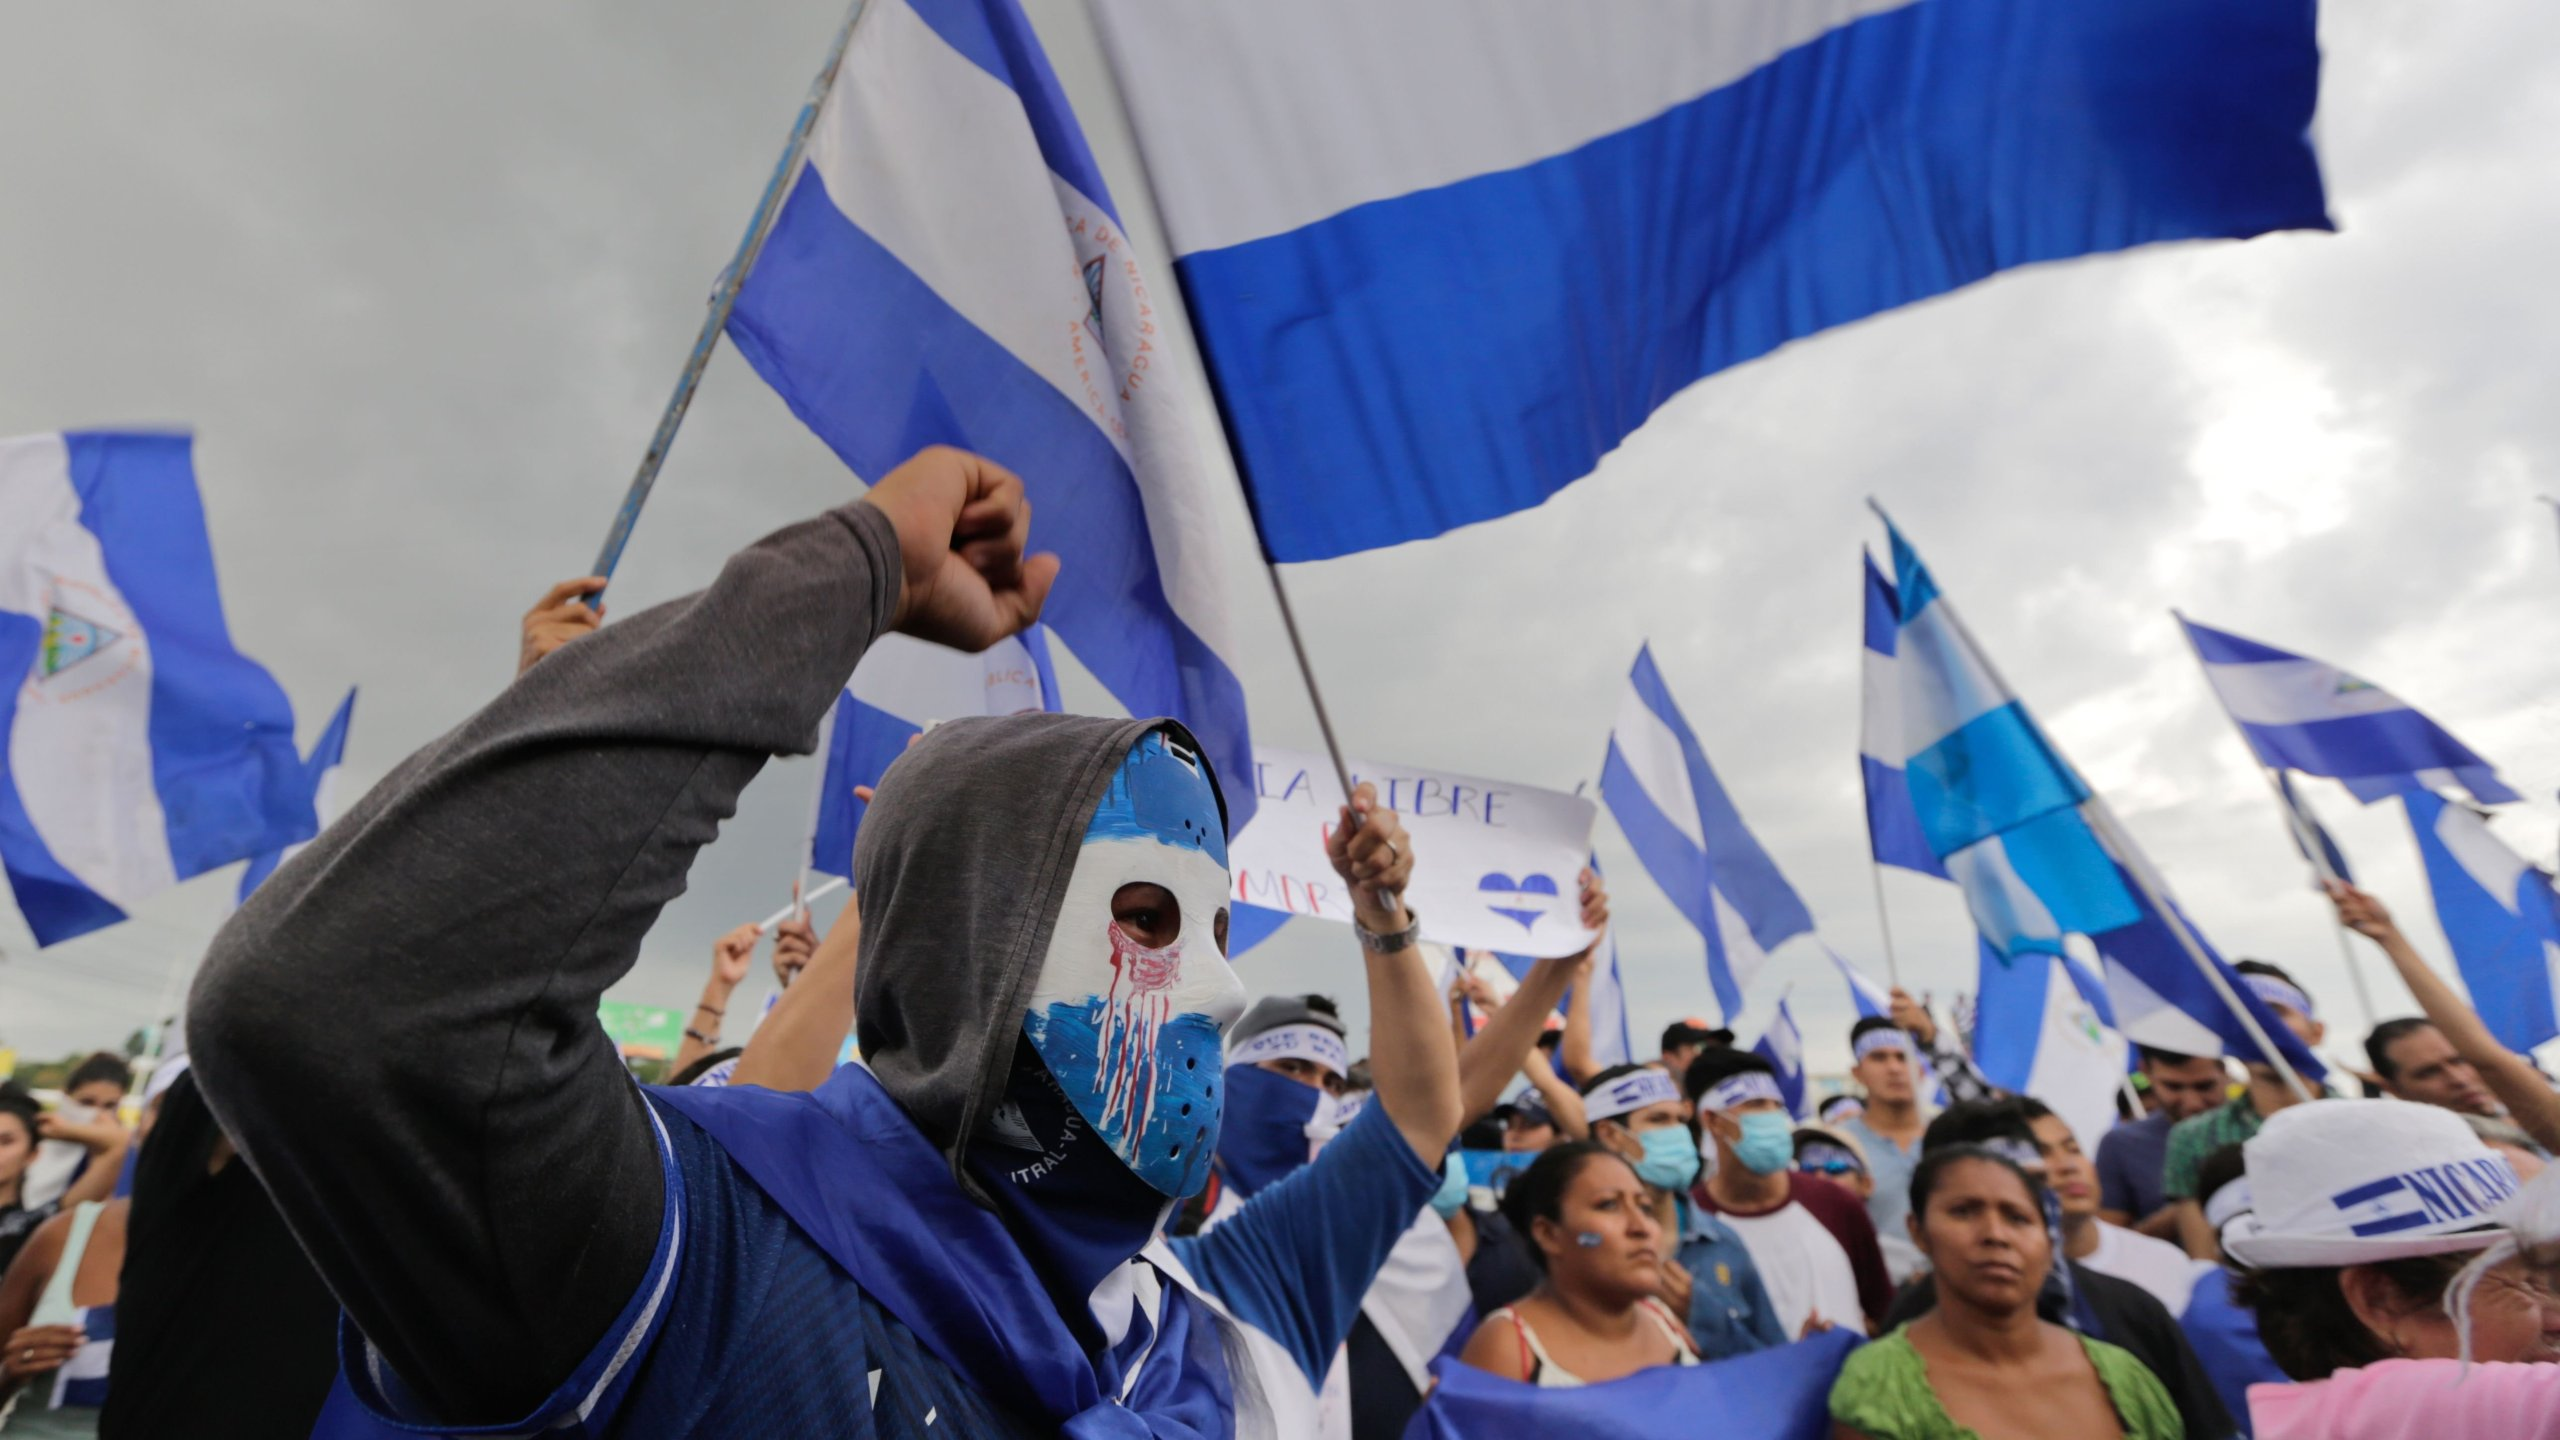 Demonstrators protest in Managua, Nicaragua on May 26, 2018. (Credit: Inti Ocon/AFP/Getty Images)